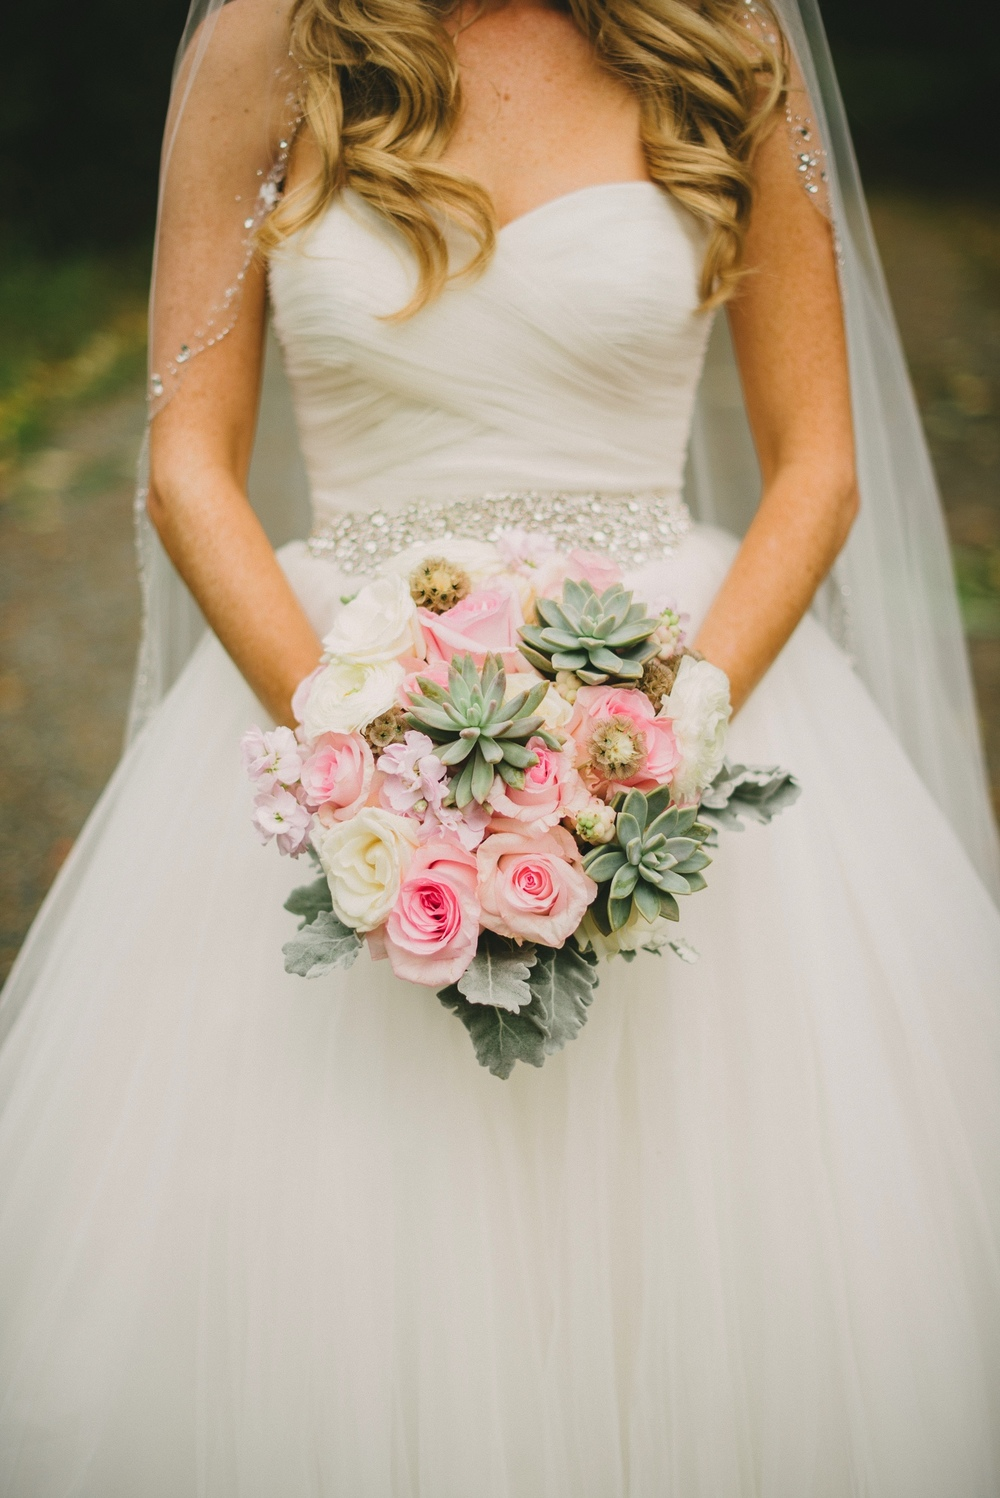 Bridal bouquet by Floral Design by Lili, Vancouver Florist, B.C. Image by Sara Rogers Photography